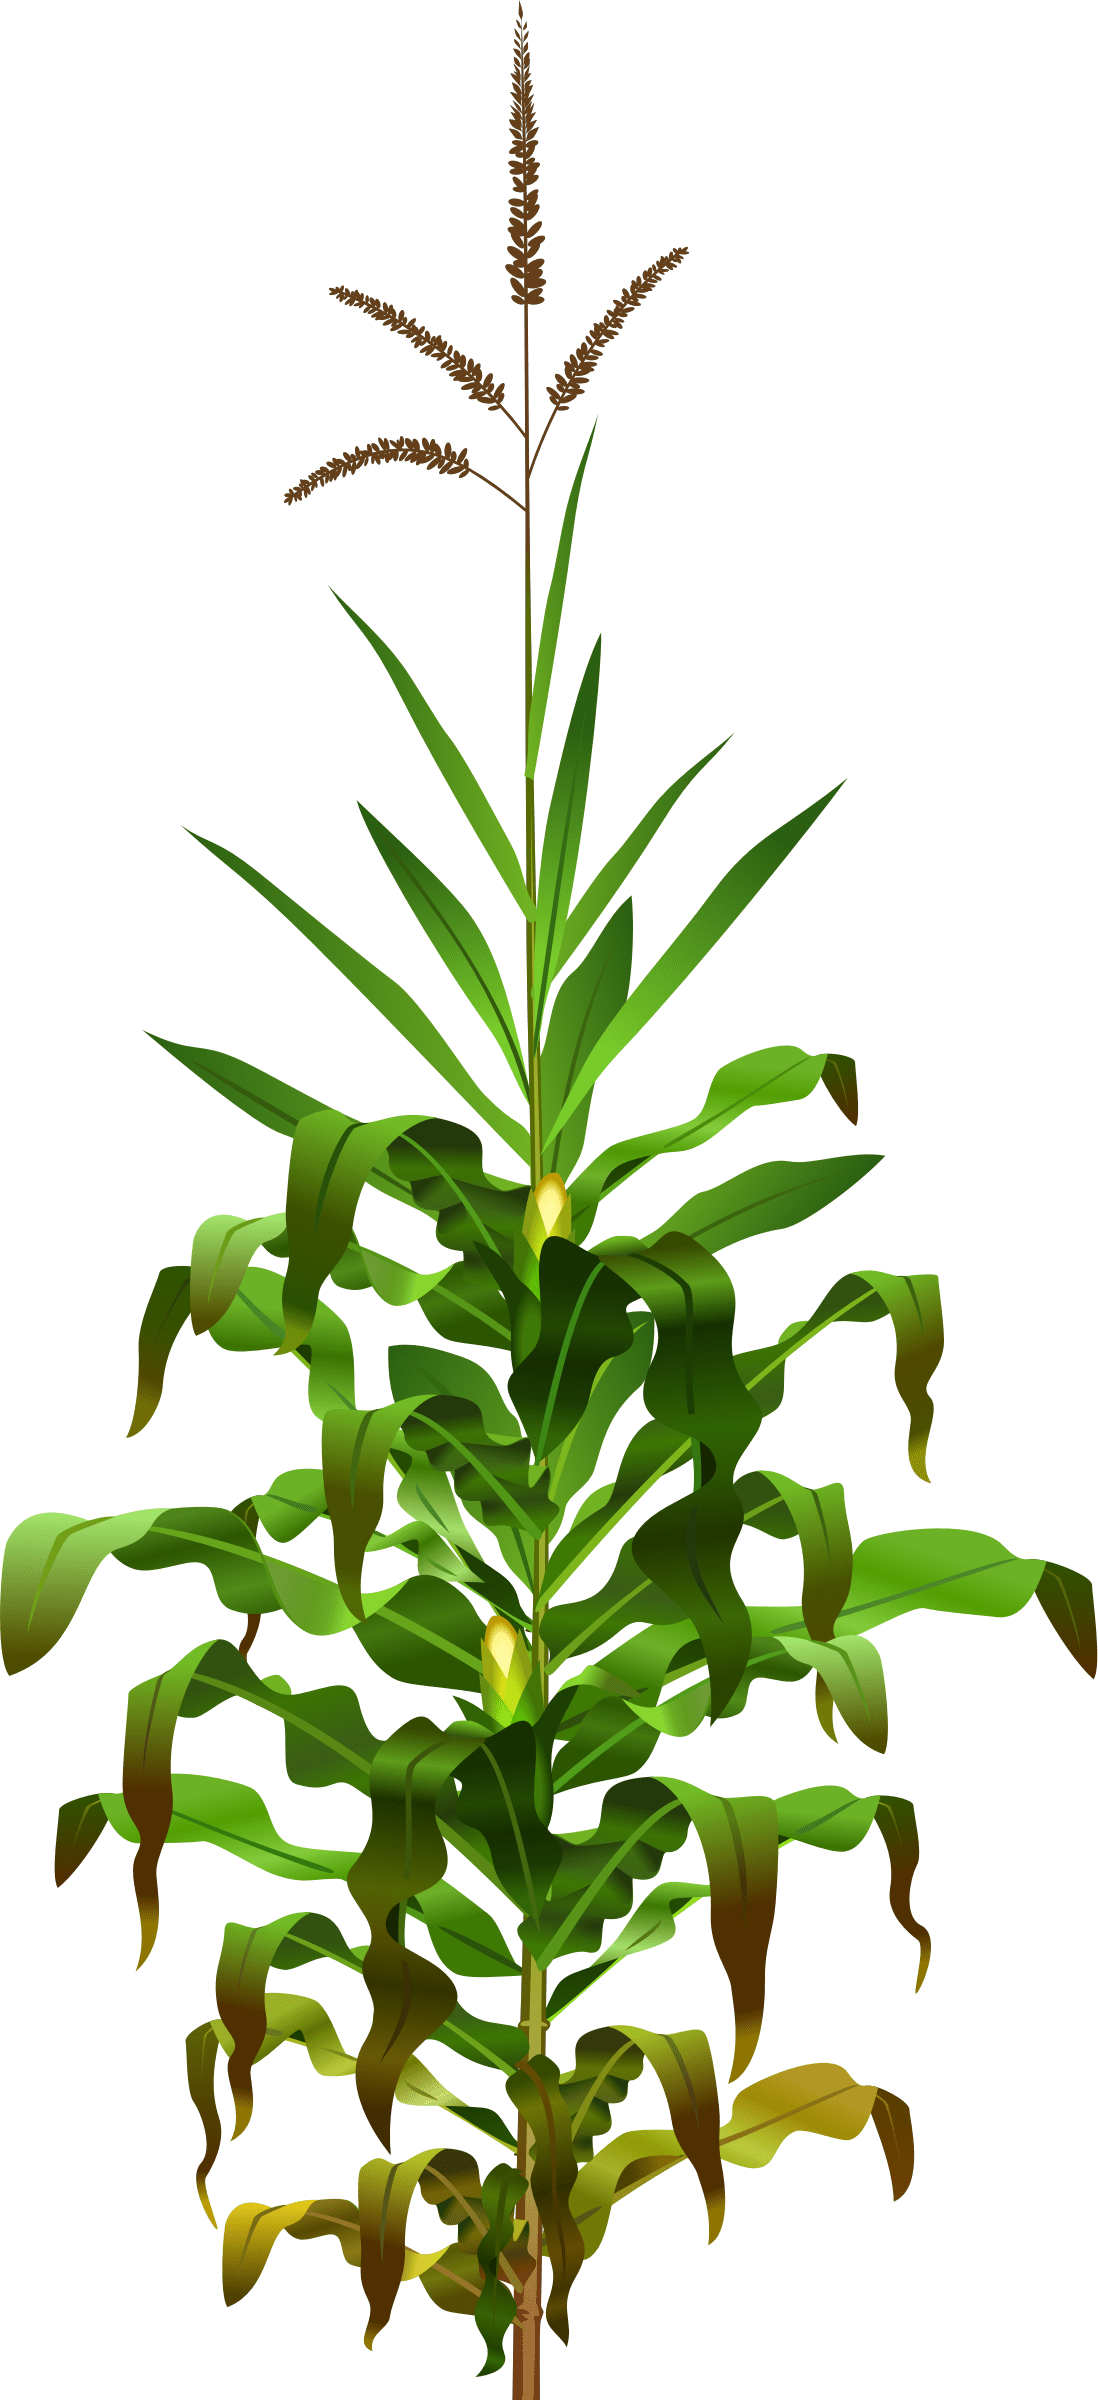 hight resolution of plant clipart bajra jowar png transparent images svg free stock